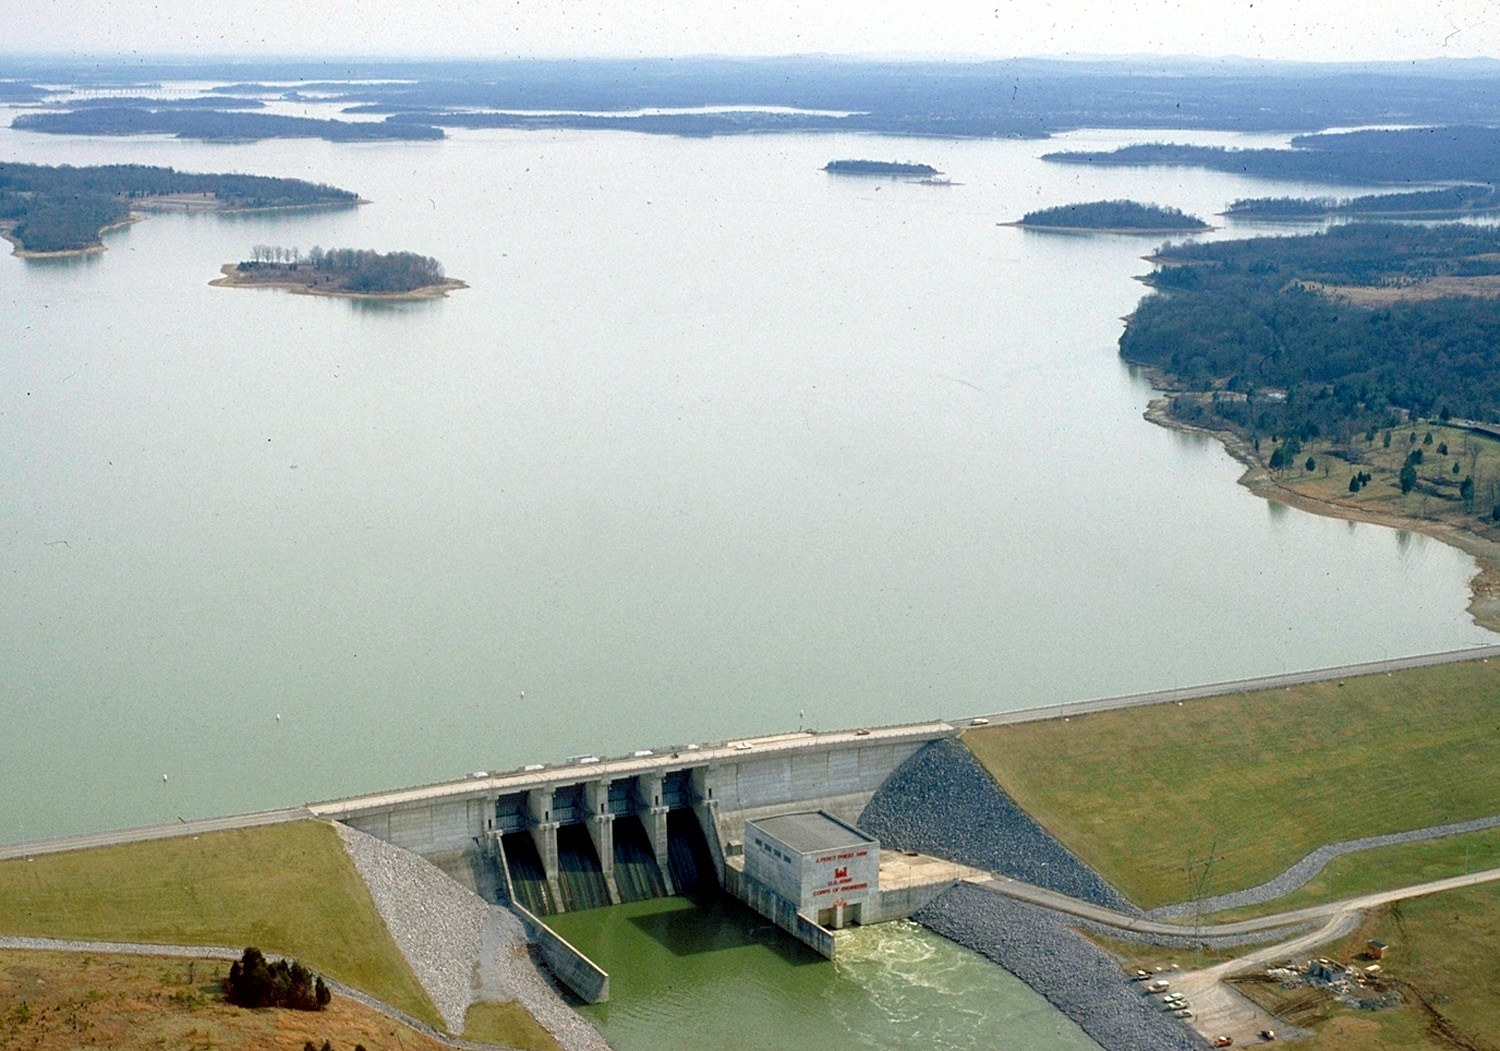 Percy Priest Lake dam, as seen from the air.